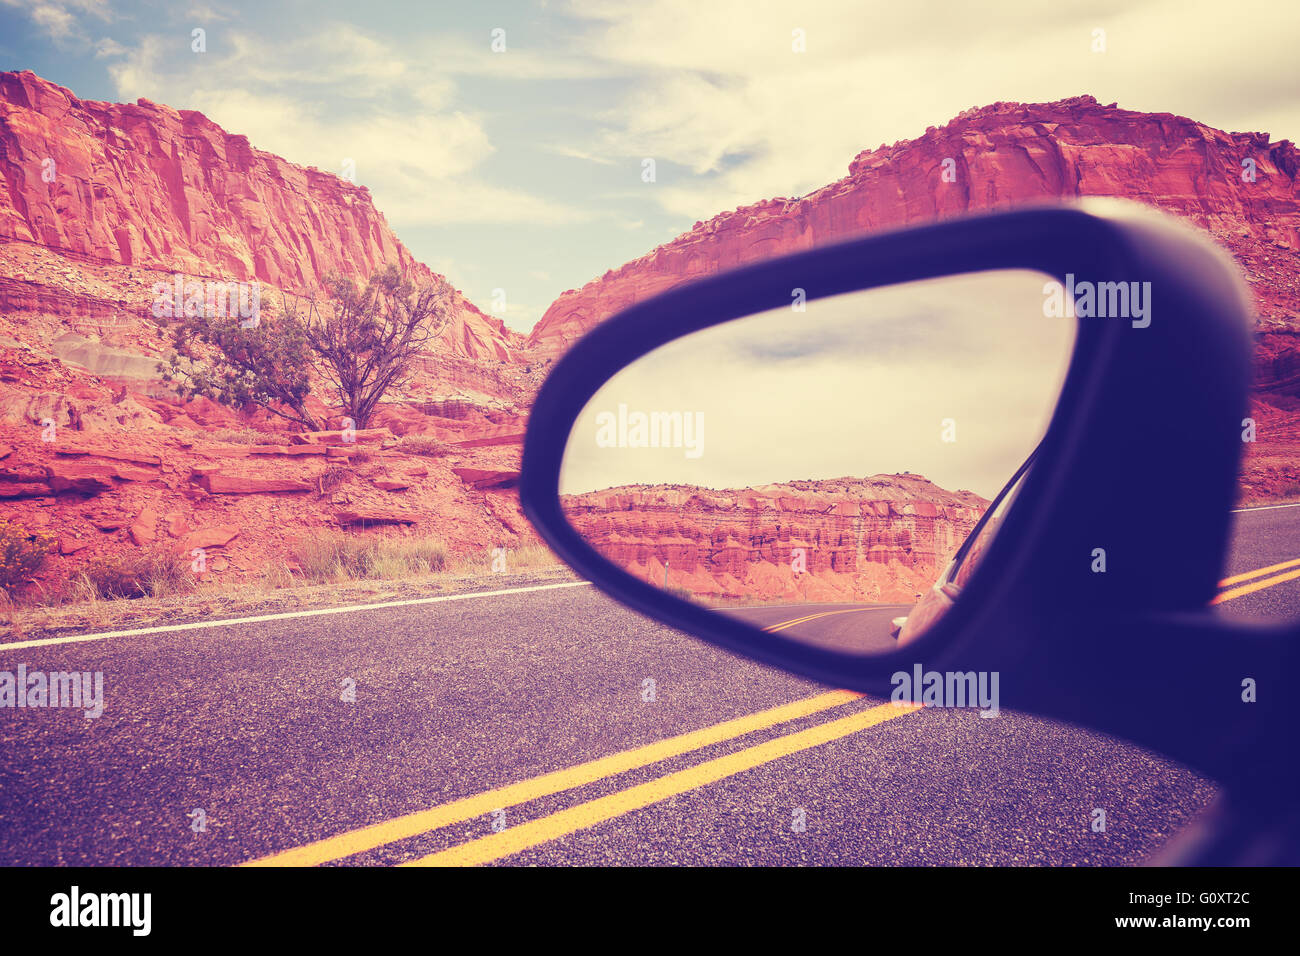 Vintage voiture stylisée wing mirror, se concentrer sur les montagnes, travel concept. Photo Stock